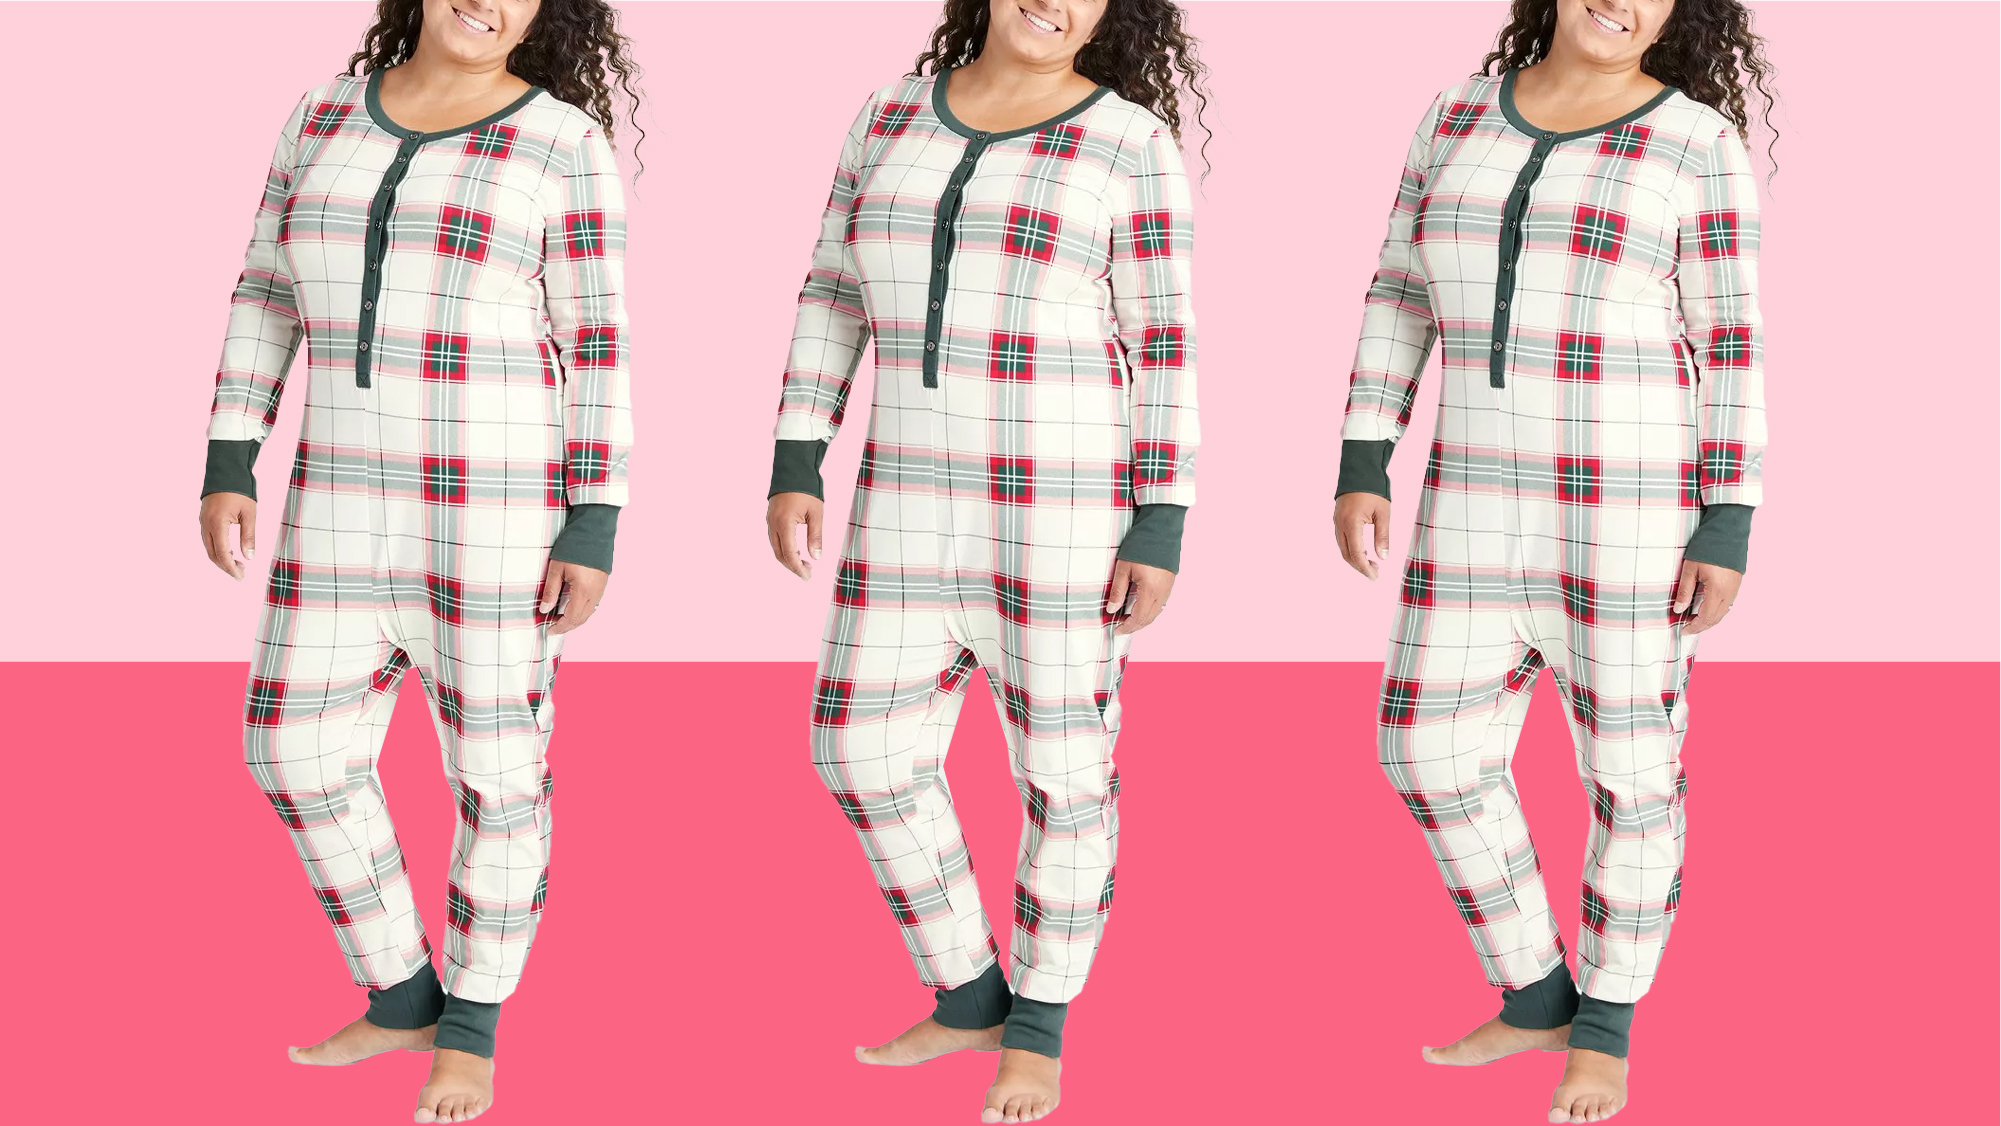 Chip and Joanna Gaines Just Released Matching Christmas Pajamas for the Entire Family at Target